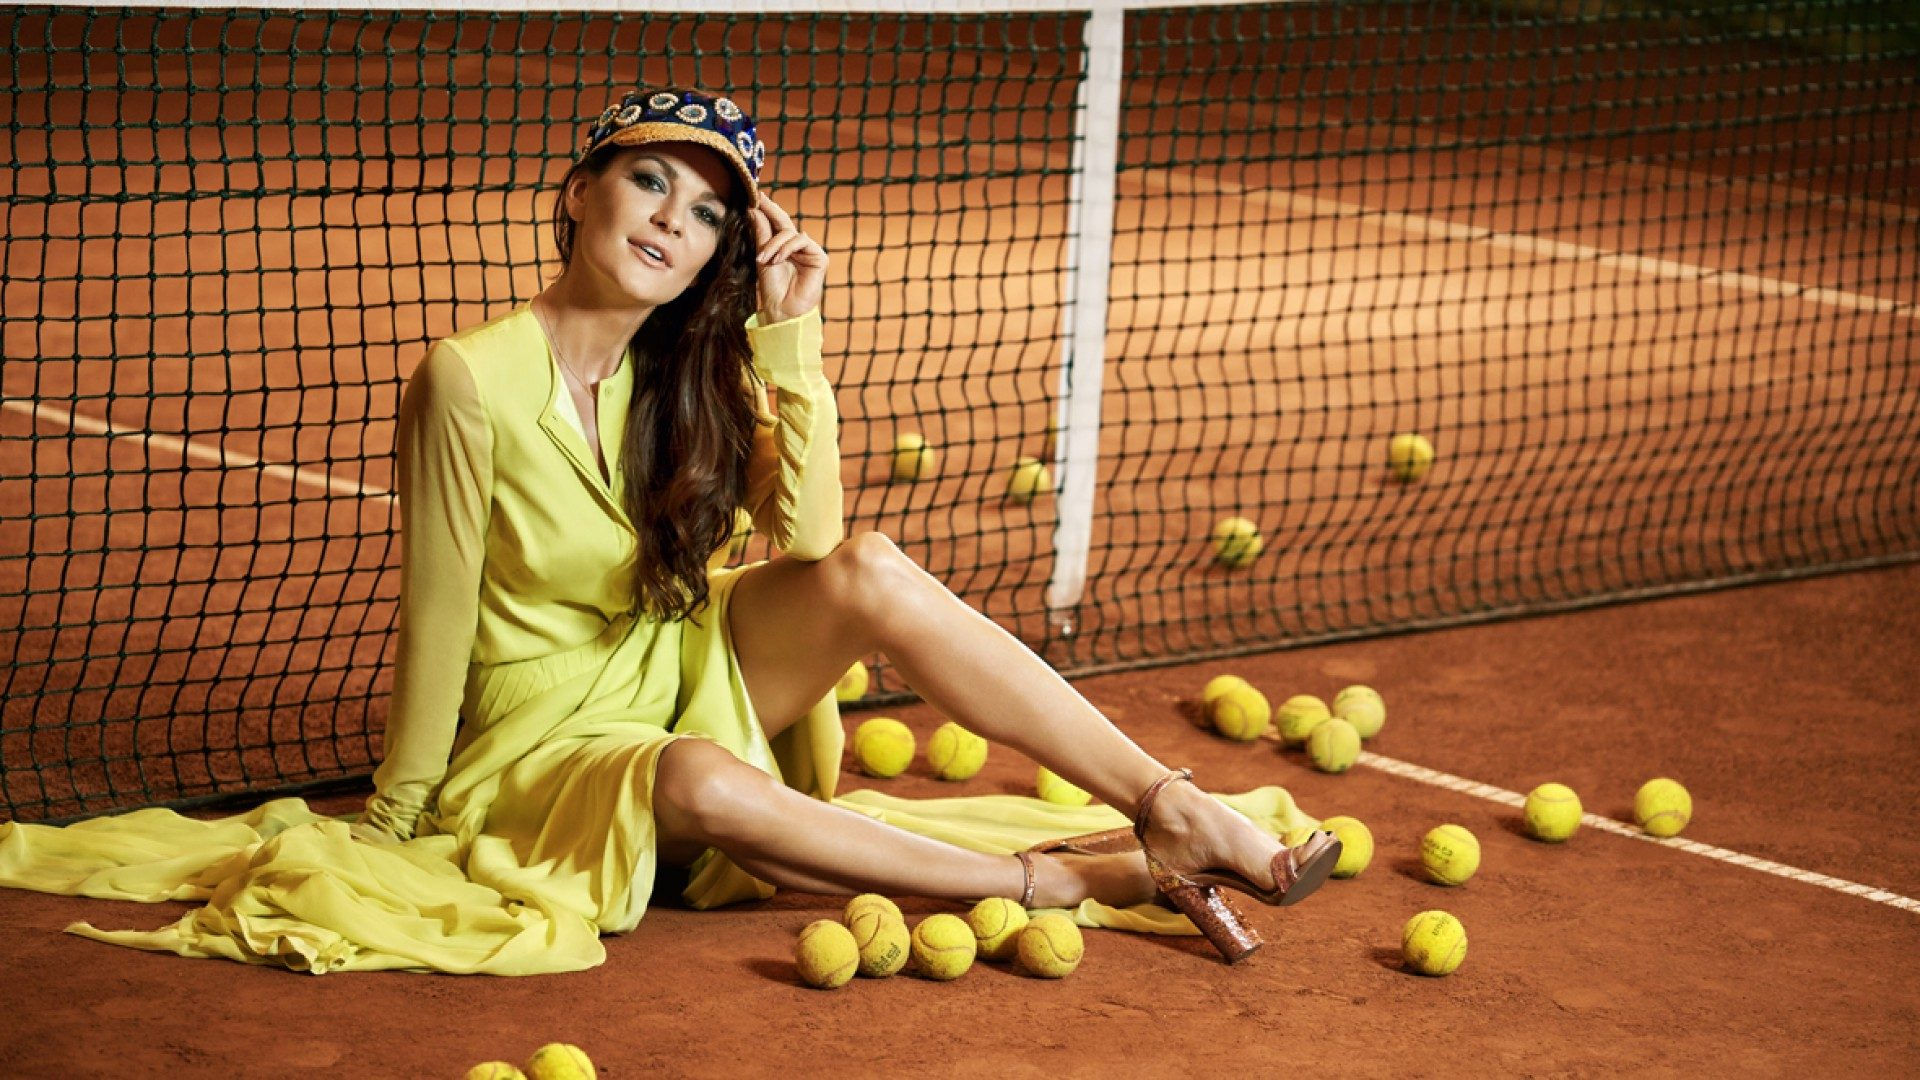 Aga Tennis Apartments - image background